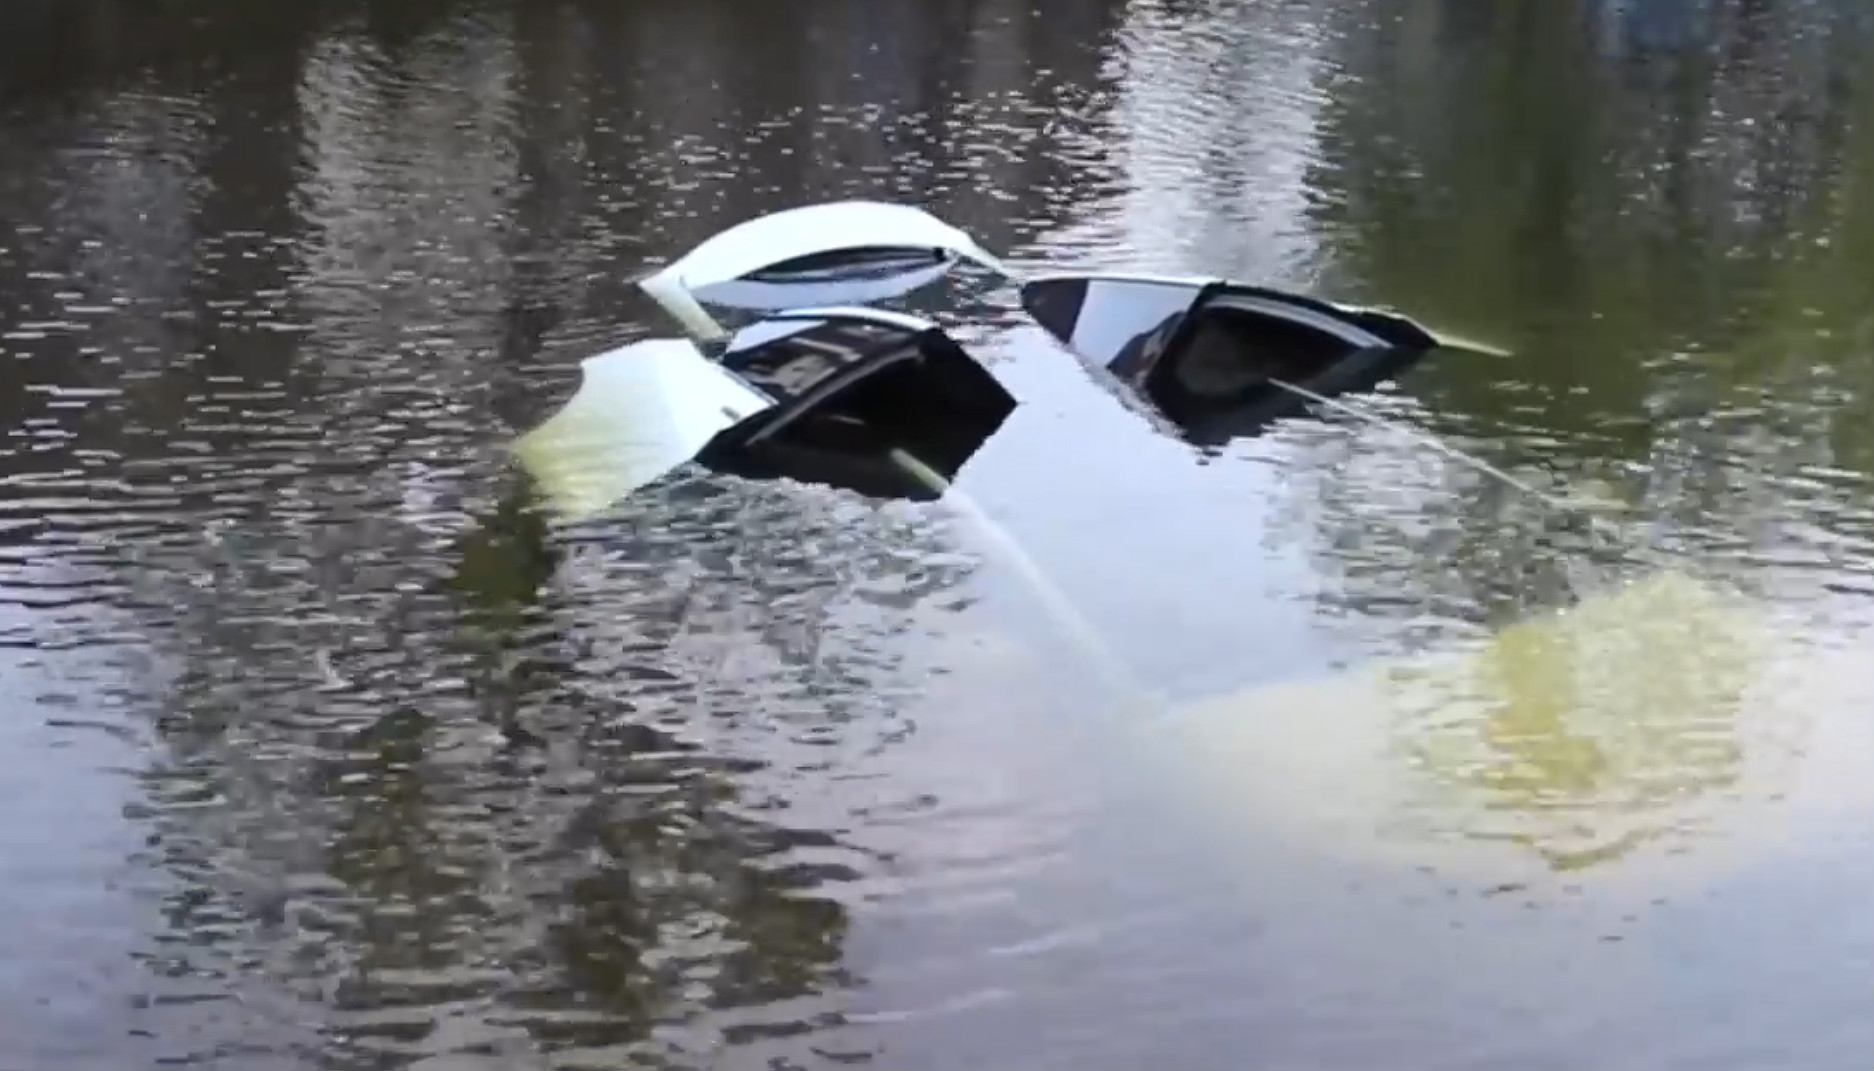 Model X sinks dutch canal 5 [Credit: Flashphoto NL/YouTube]